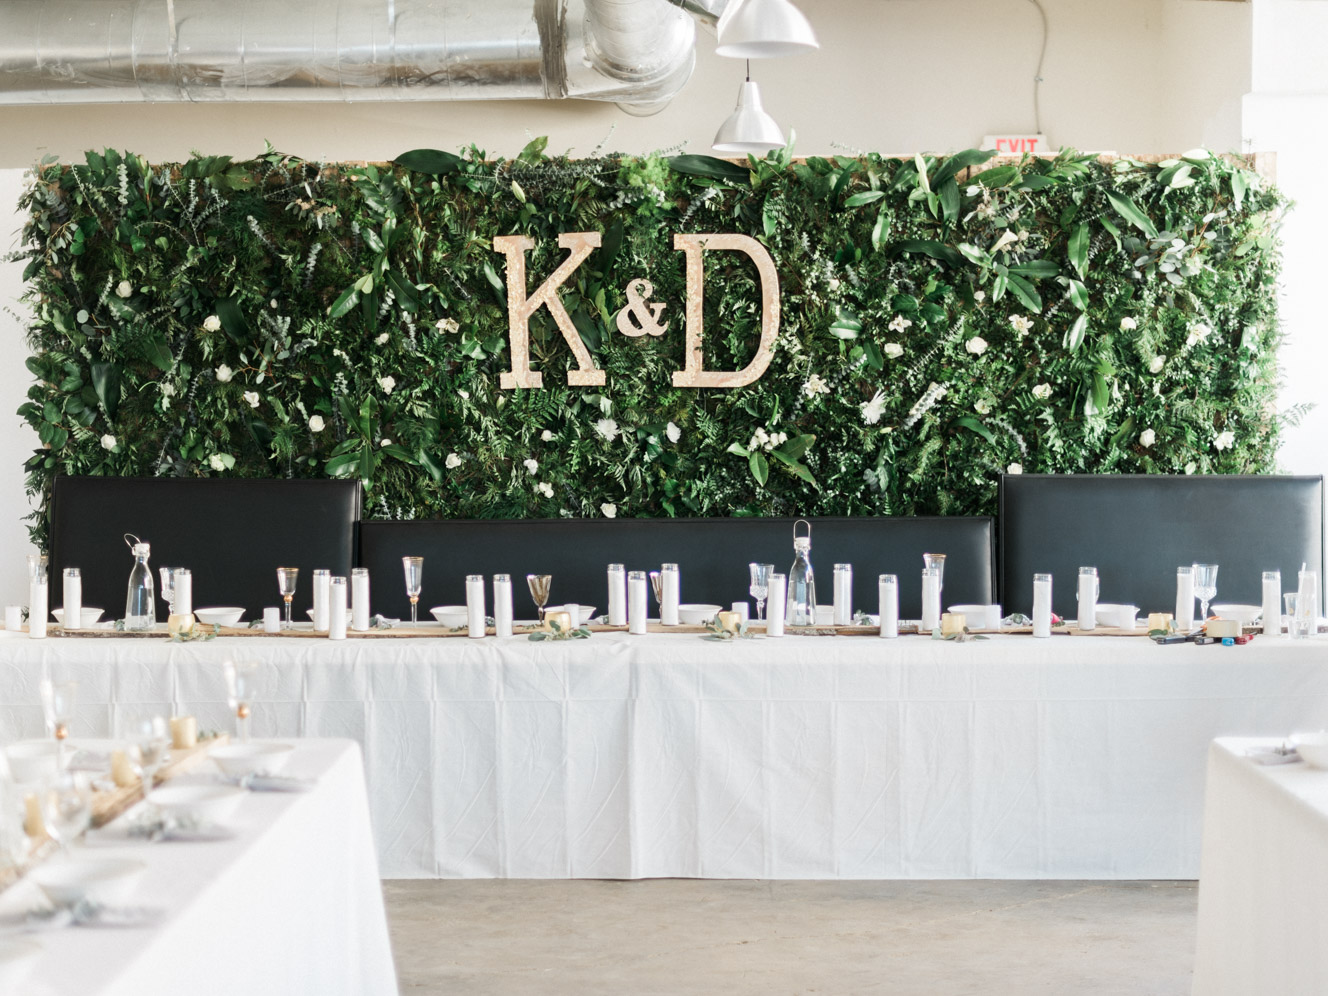 DIY Flower Wall Reception | Warehouse Venue Downtown, The Glass House | Bella Wedding Dress by Sarah Janks | Rustic Winter Wedding | Lynchburg, Virginia Film Photographer | kelseyandnate.com